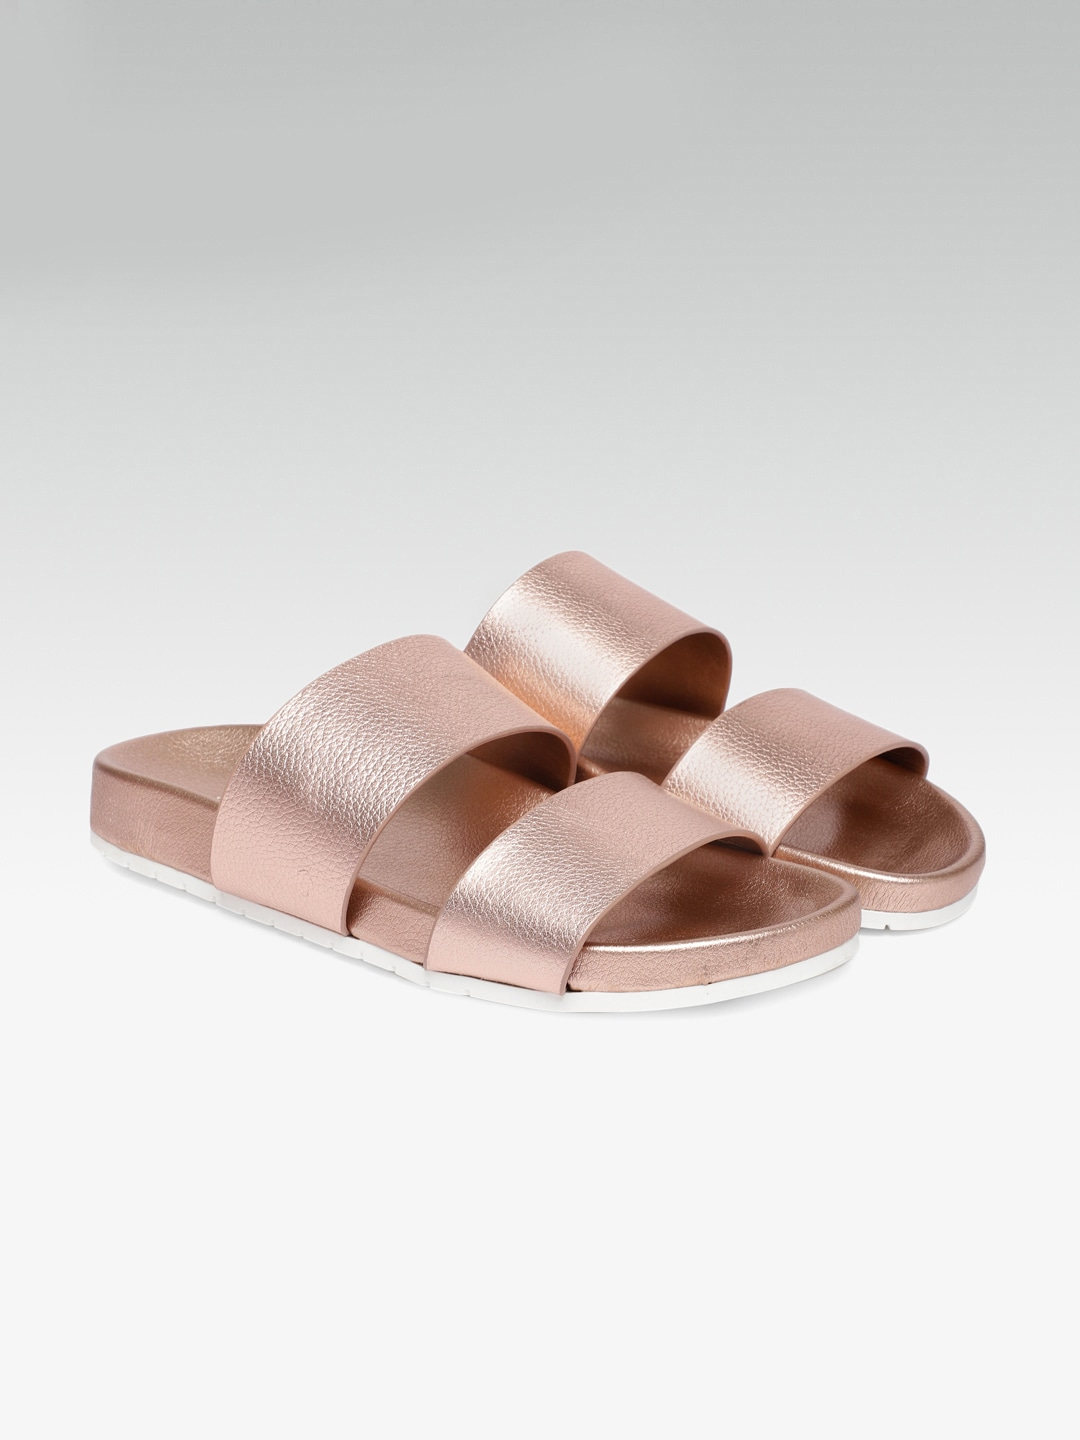 01cba2e662ac ALDO Shoes - Buy Shoes from ALDO Online Store in India